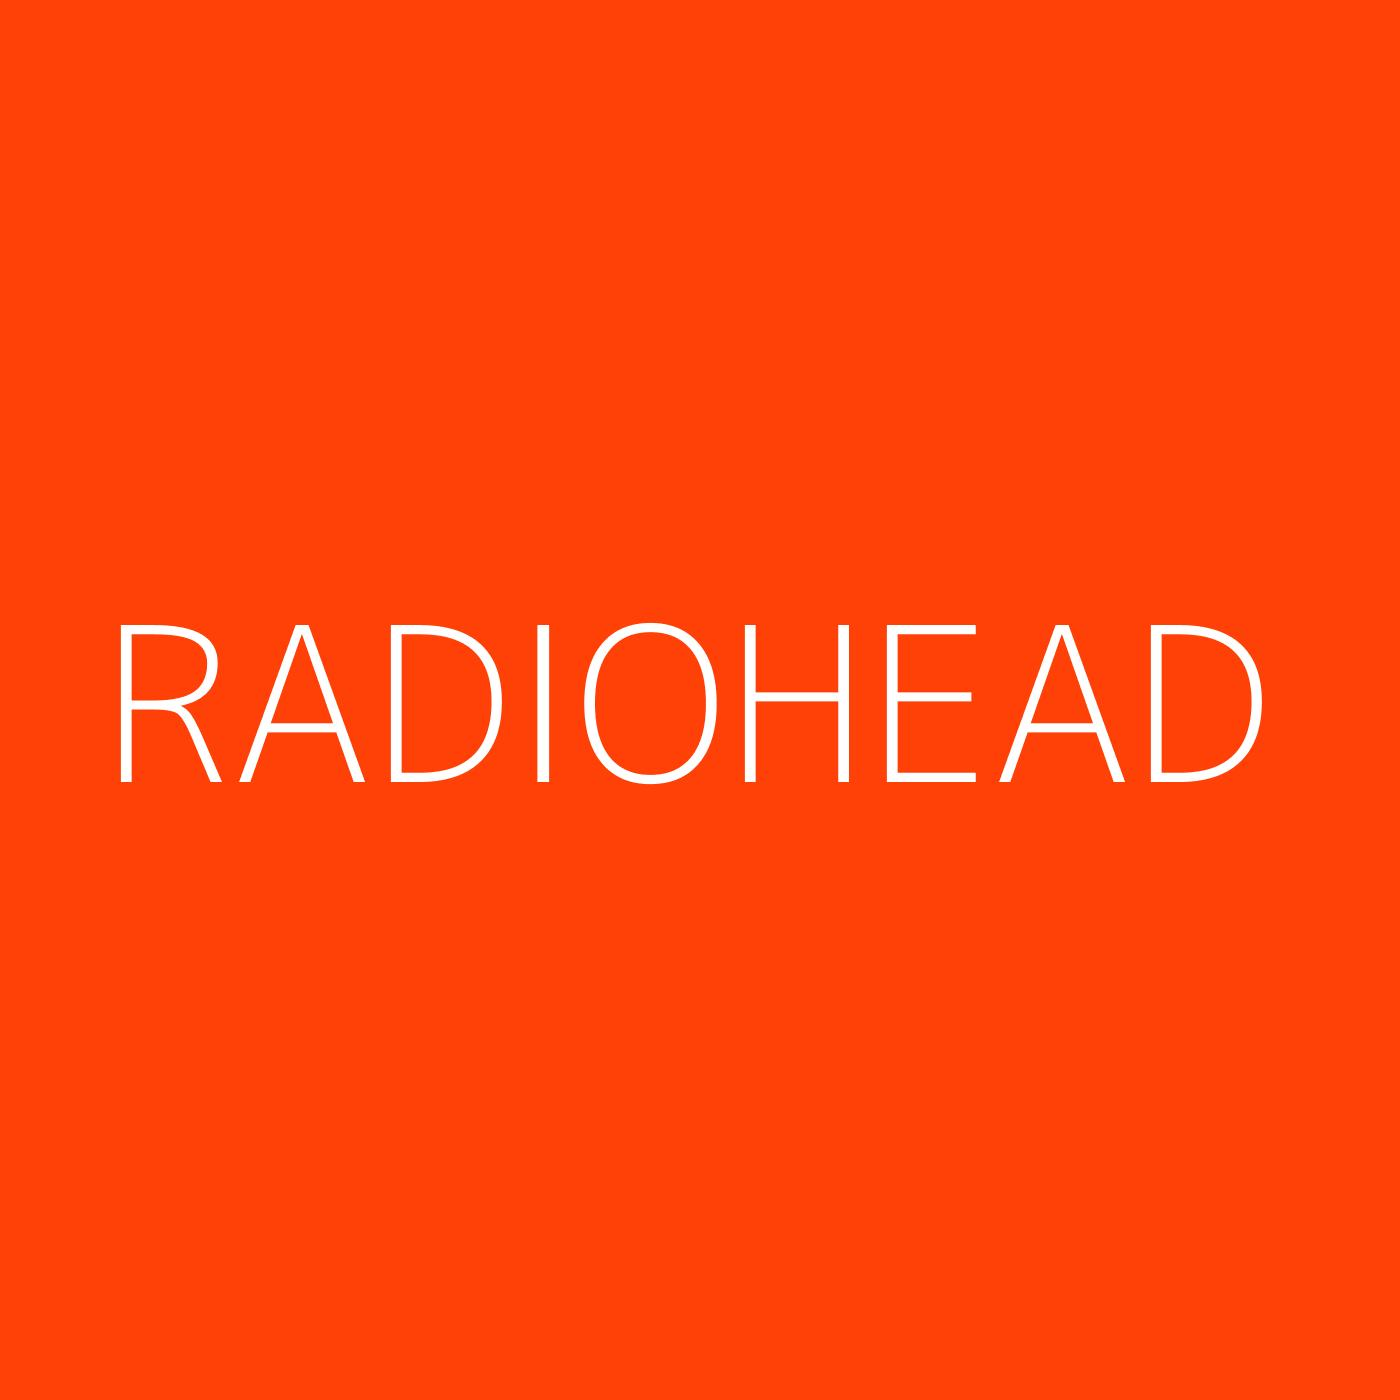 Radiohead Playlist Artwork